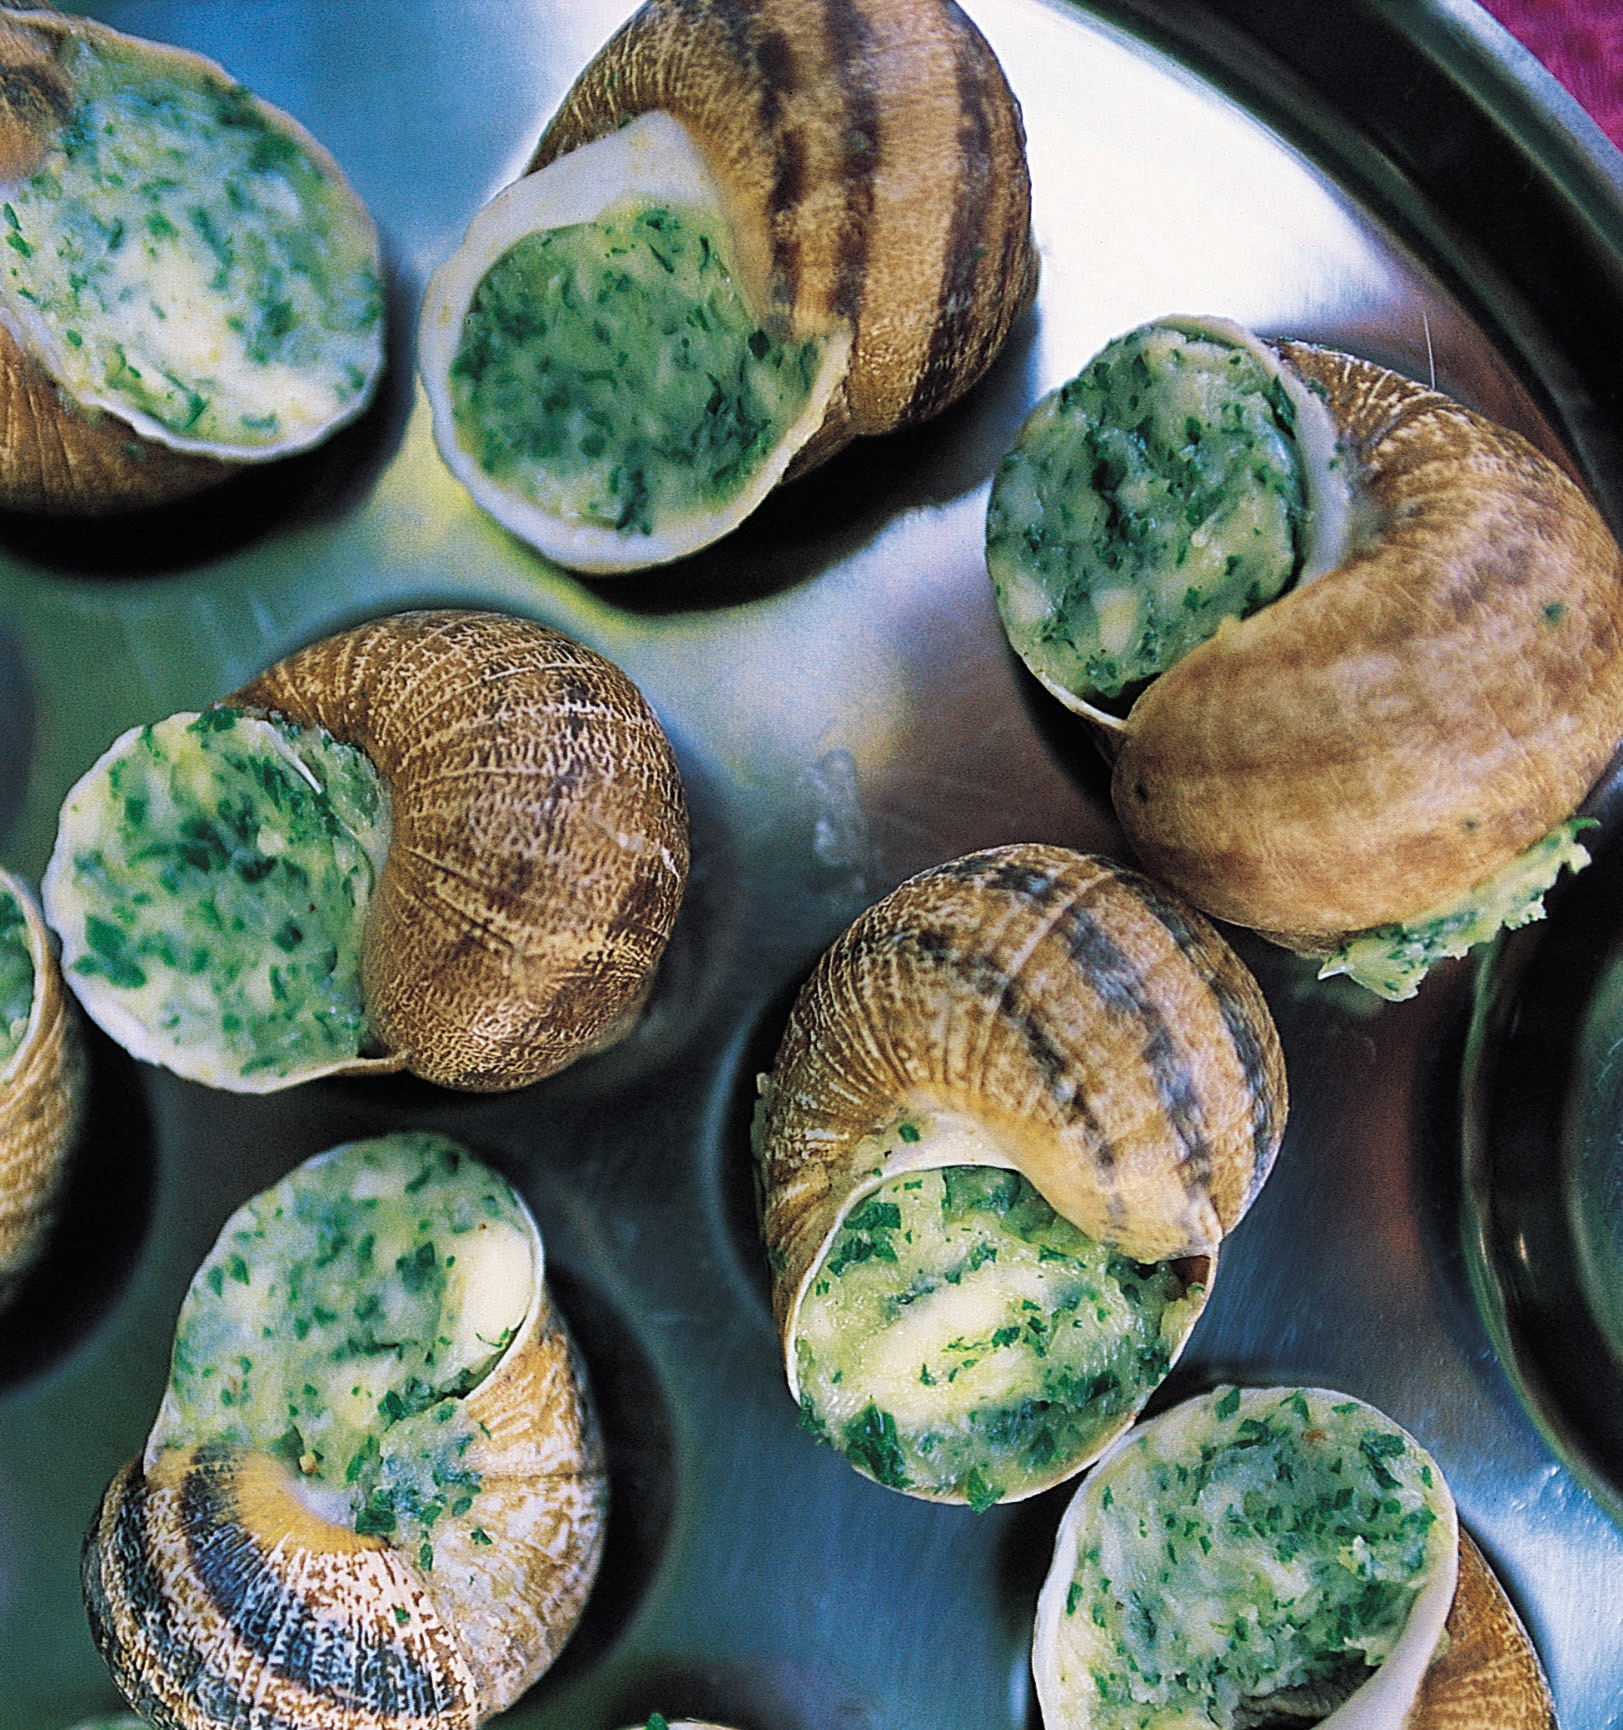 It's a local delicacy in France. This is probably not a good enough reason to convince you to eat some, but it will be a great story to tell in the future! -